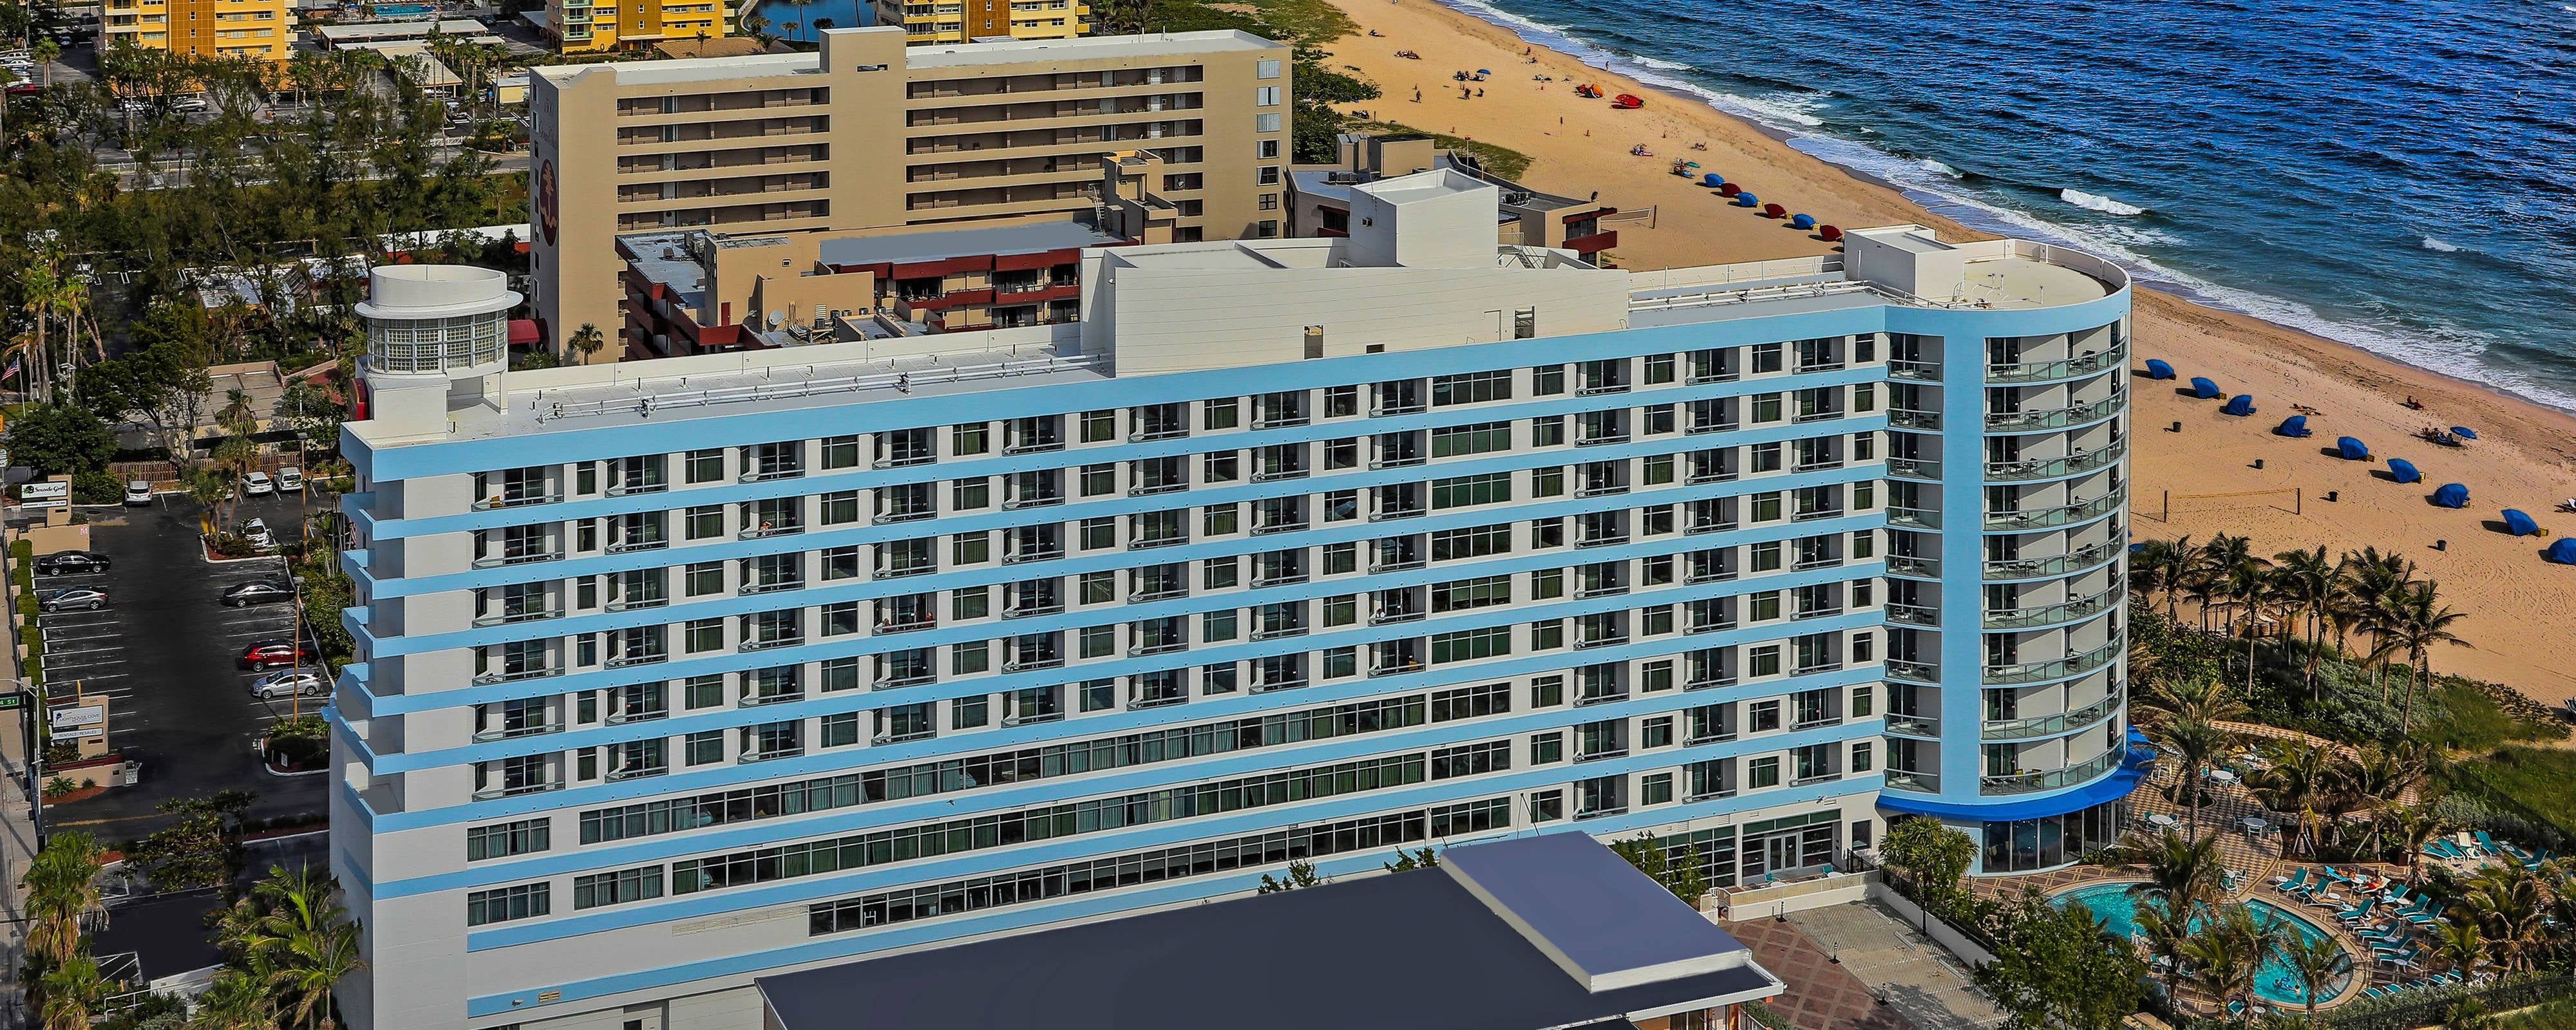 Pompano Beach Hotels Residence Inn Fort